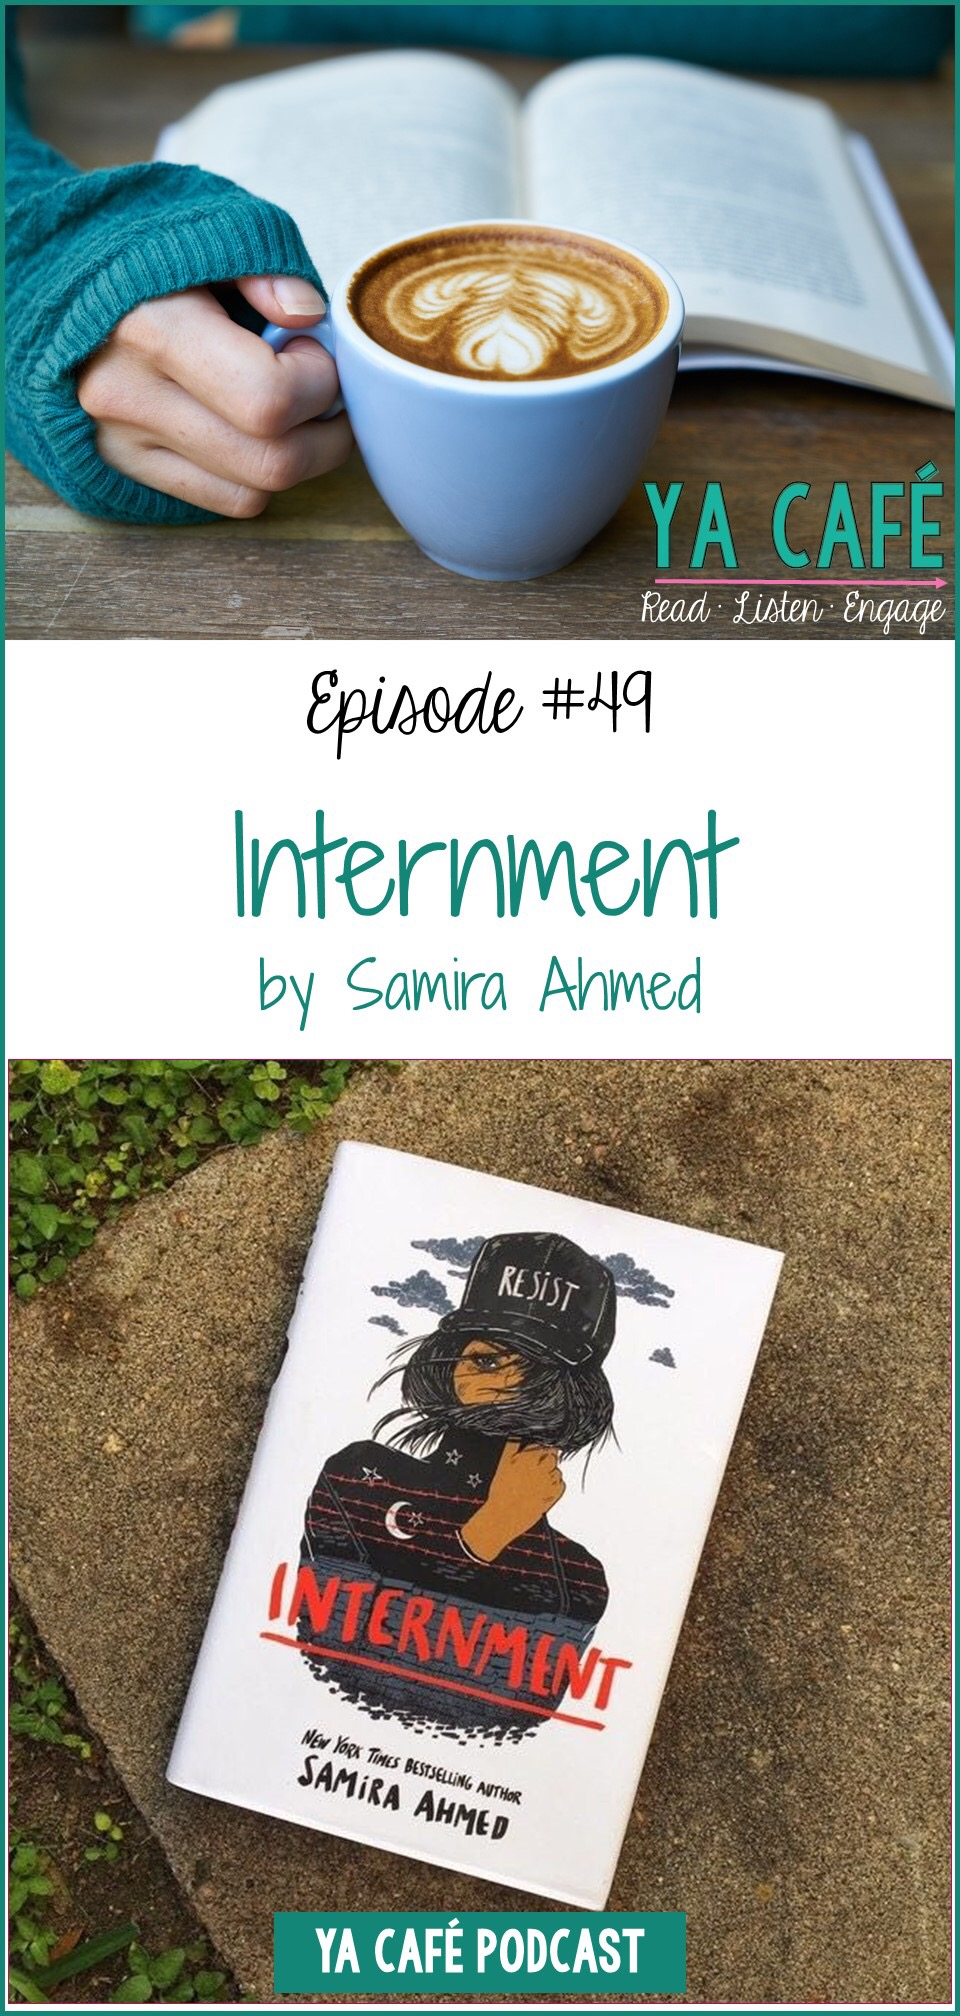 49 Internment by Samira Ahmed